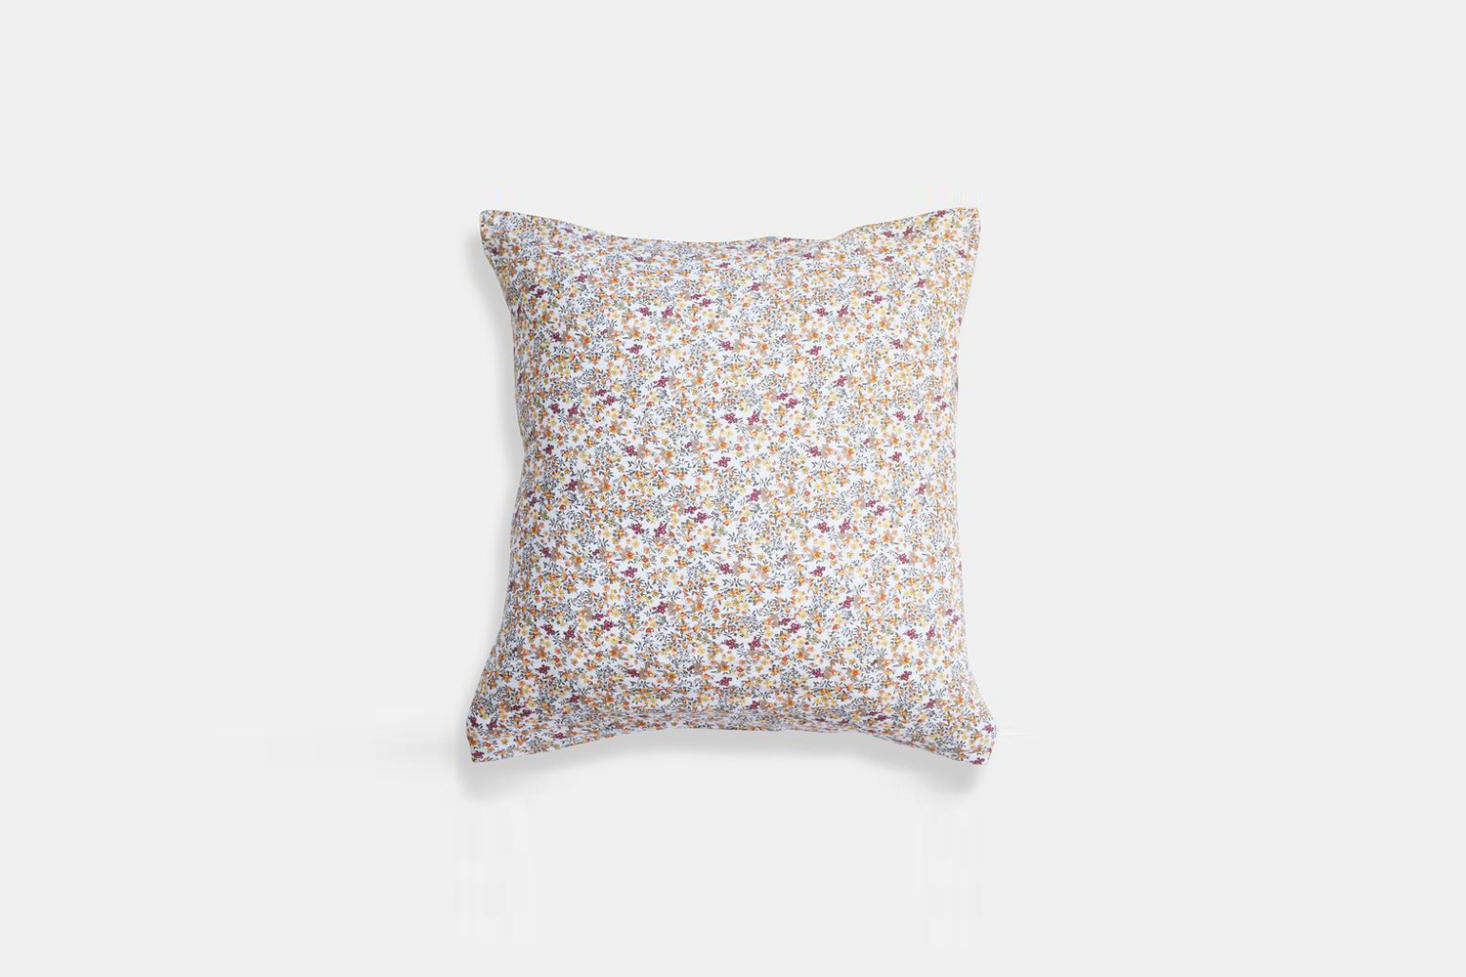 The Ligne Particulier Curry Flowers Linen Euro Pillowcase is $65 at Collyer&#8